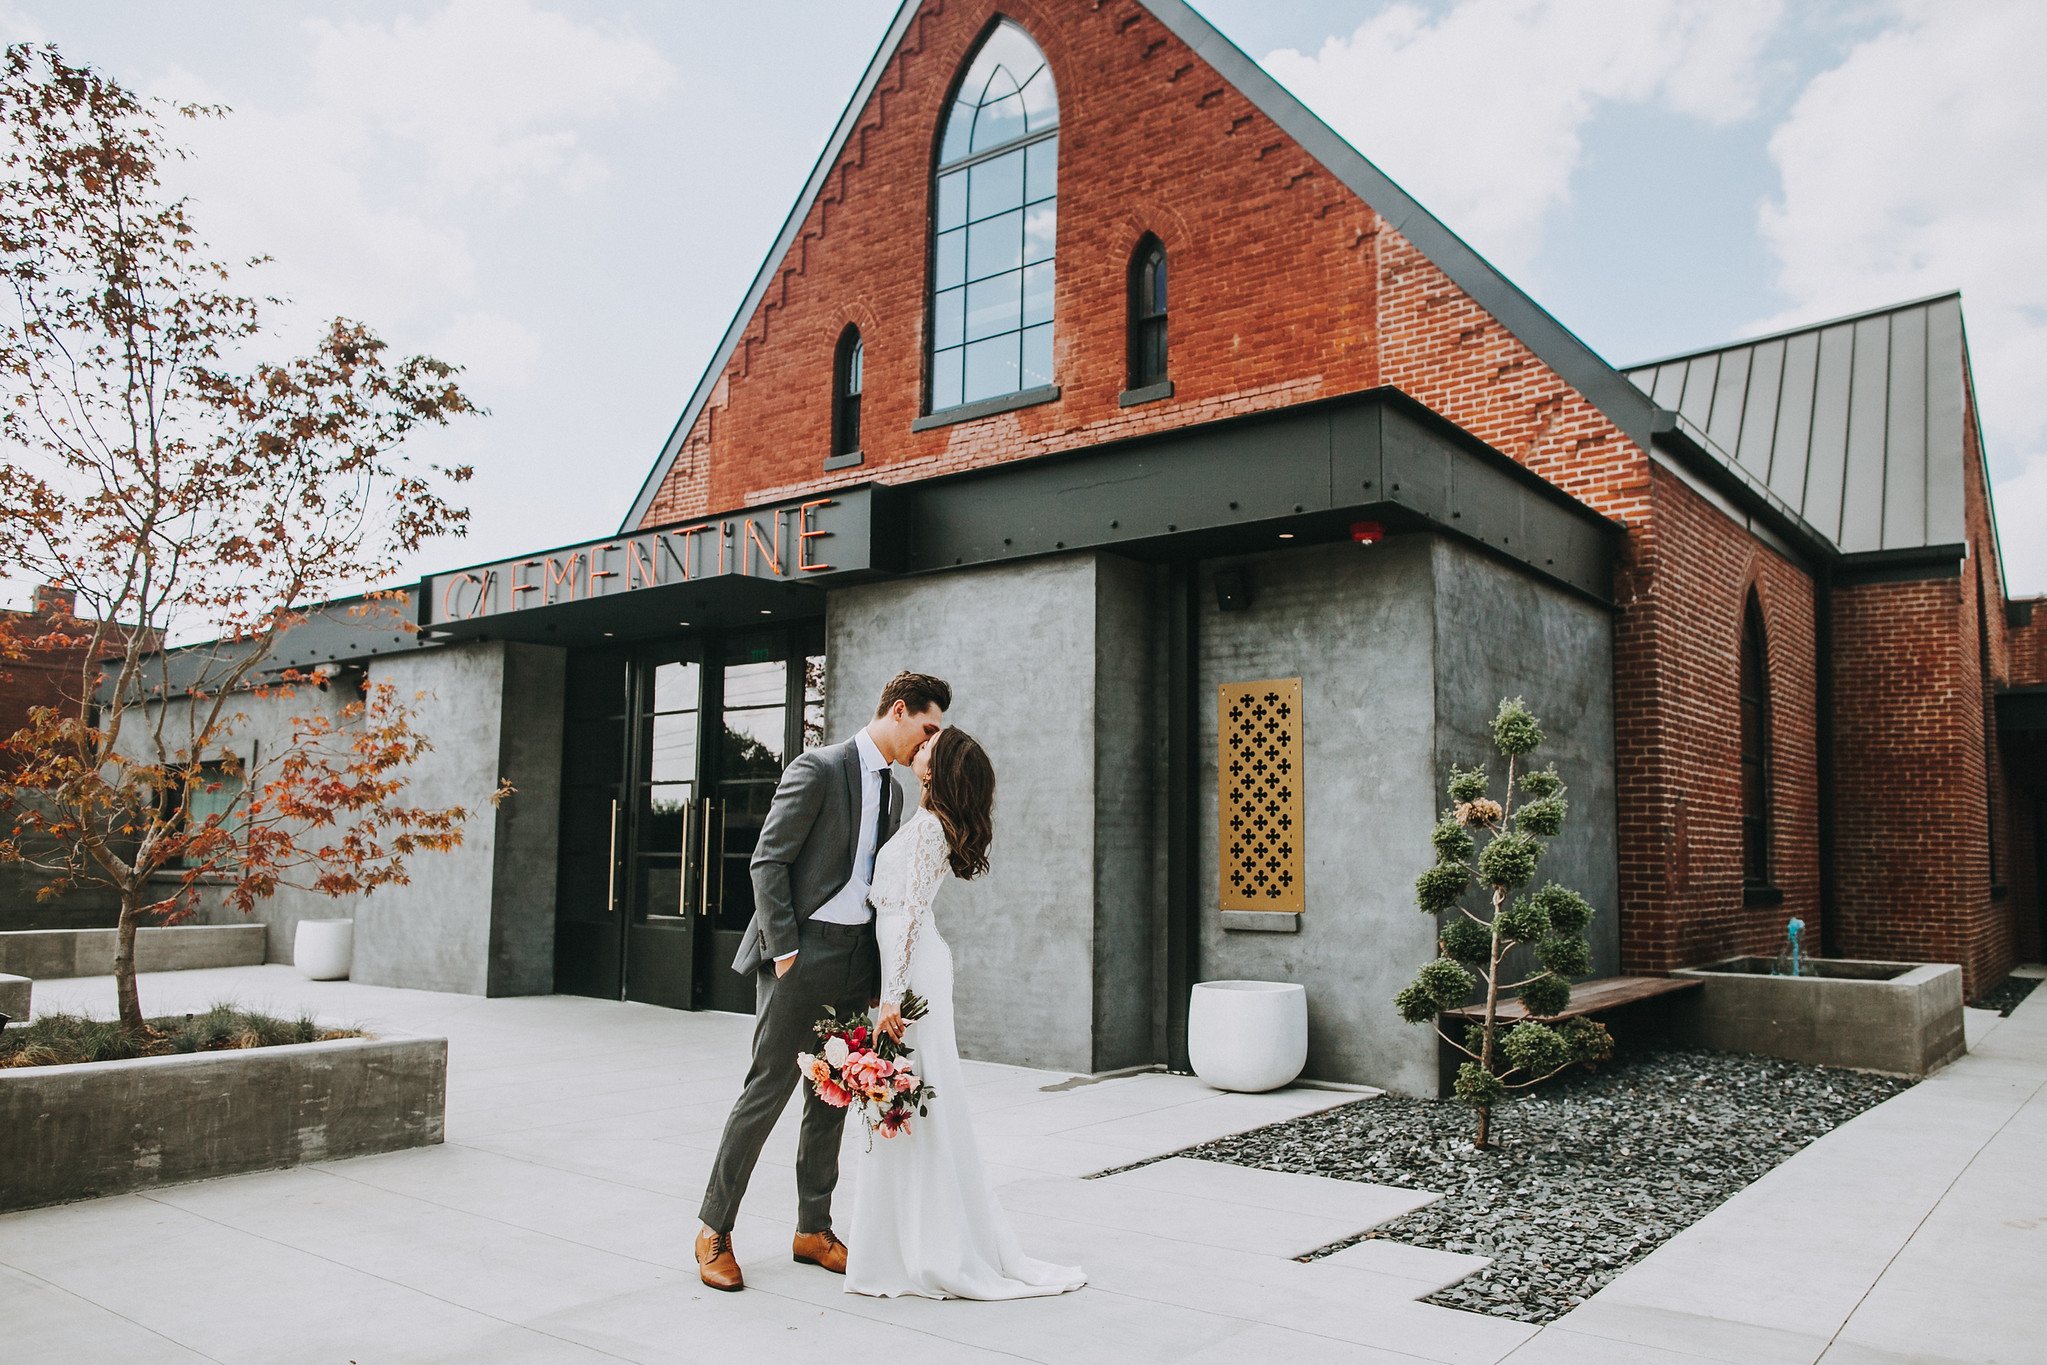 Clementine Hall's distinctive spaces frame every event